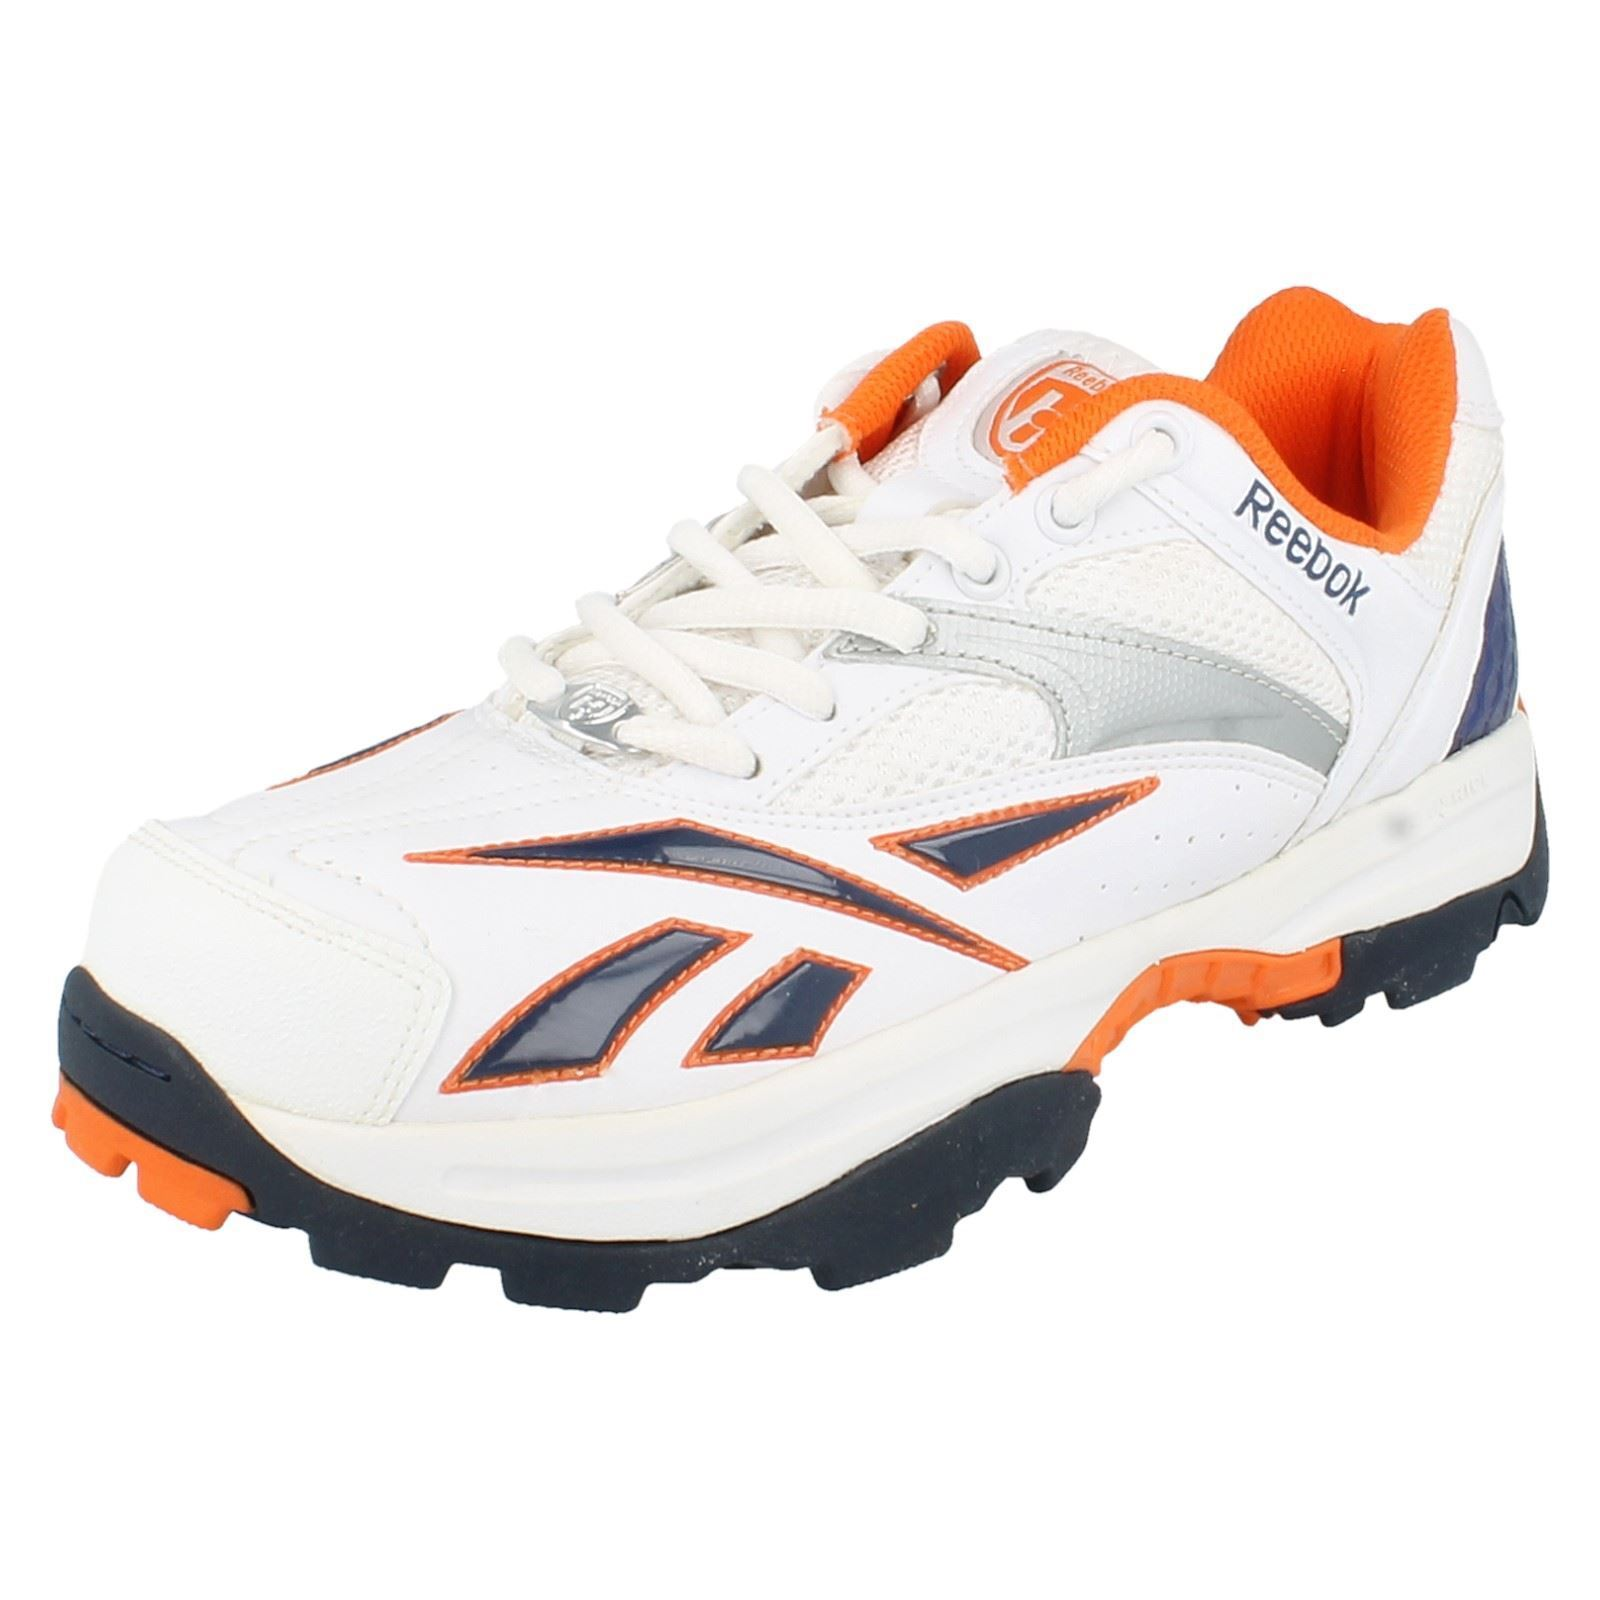 Reebok Mens Lace Up Trainers - Game Trainer White Silver Paprika Royal